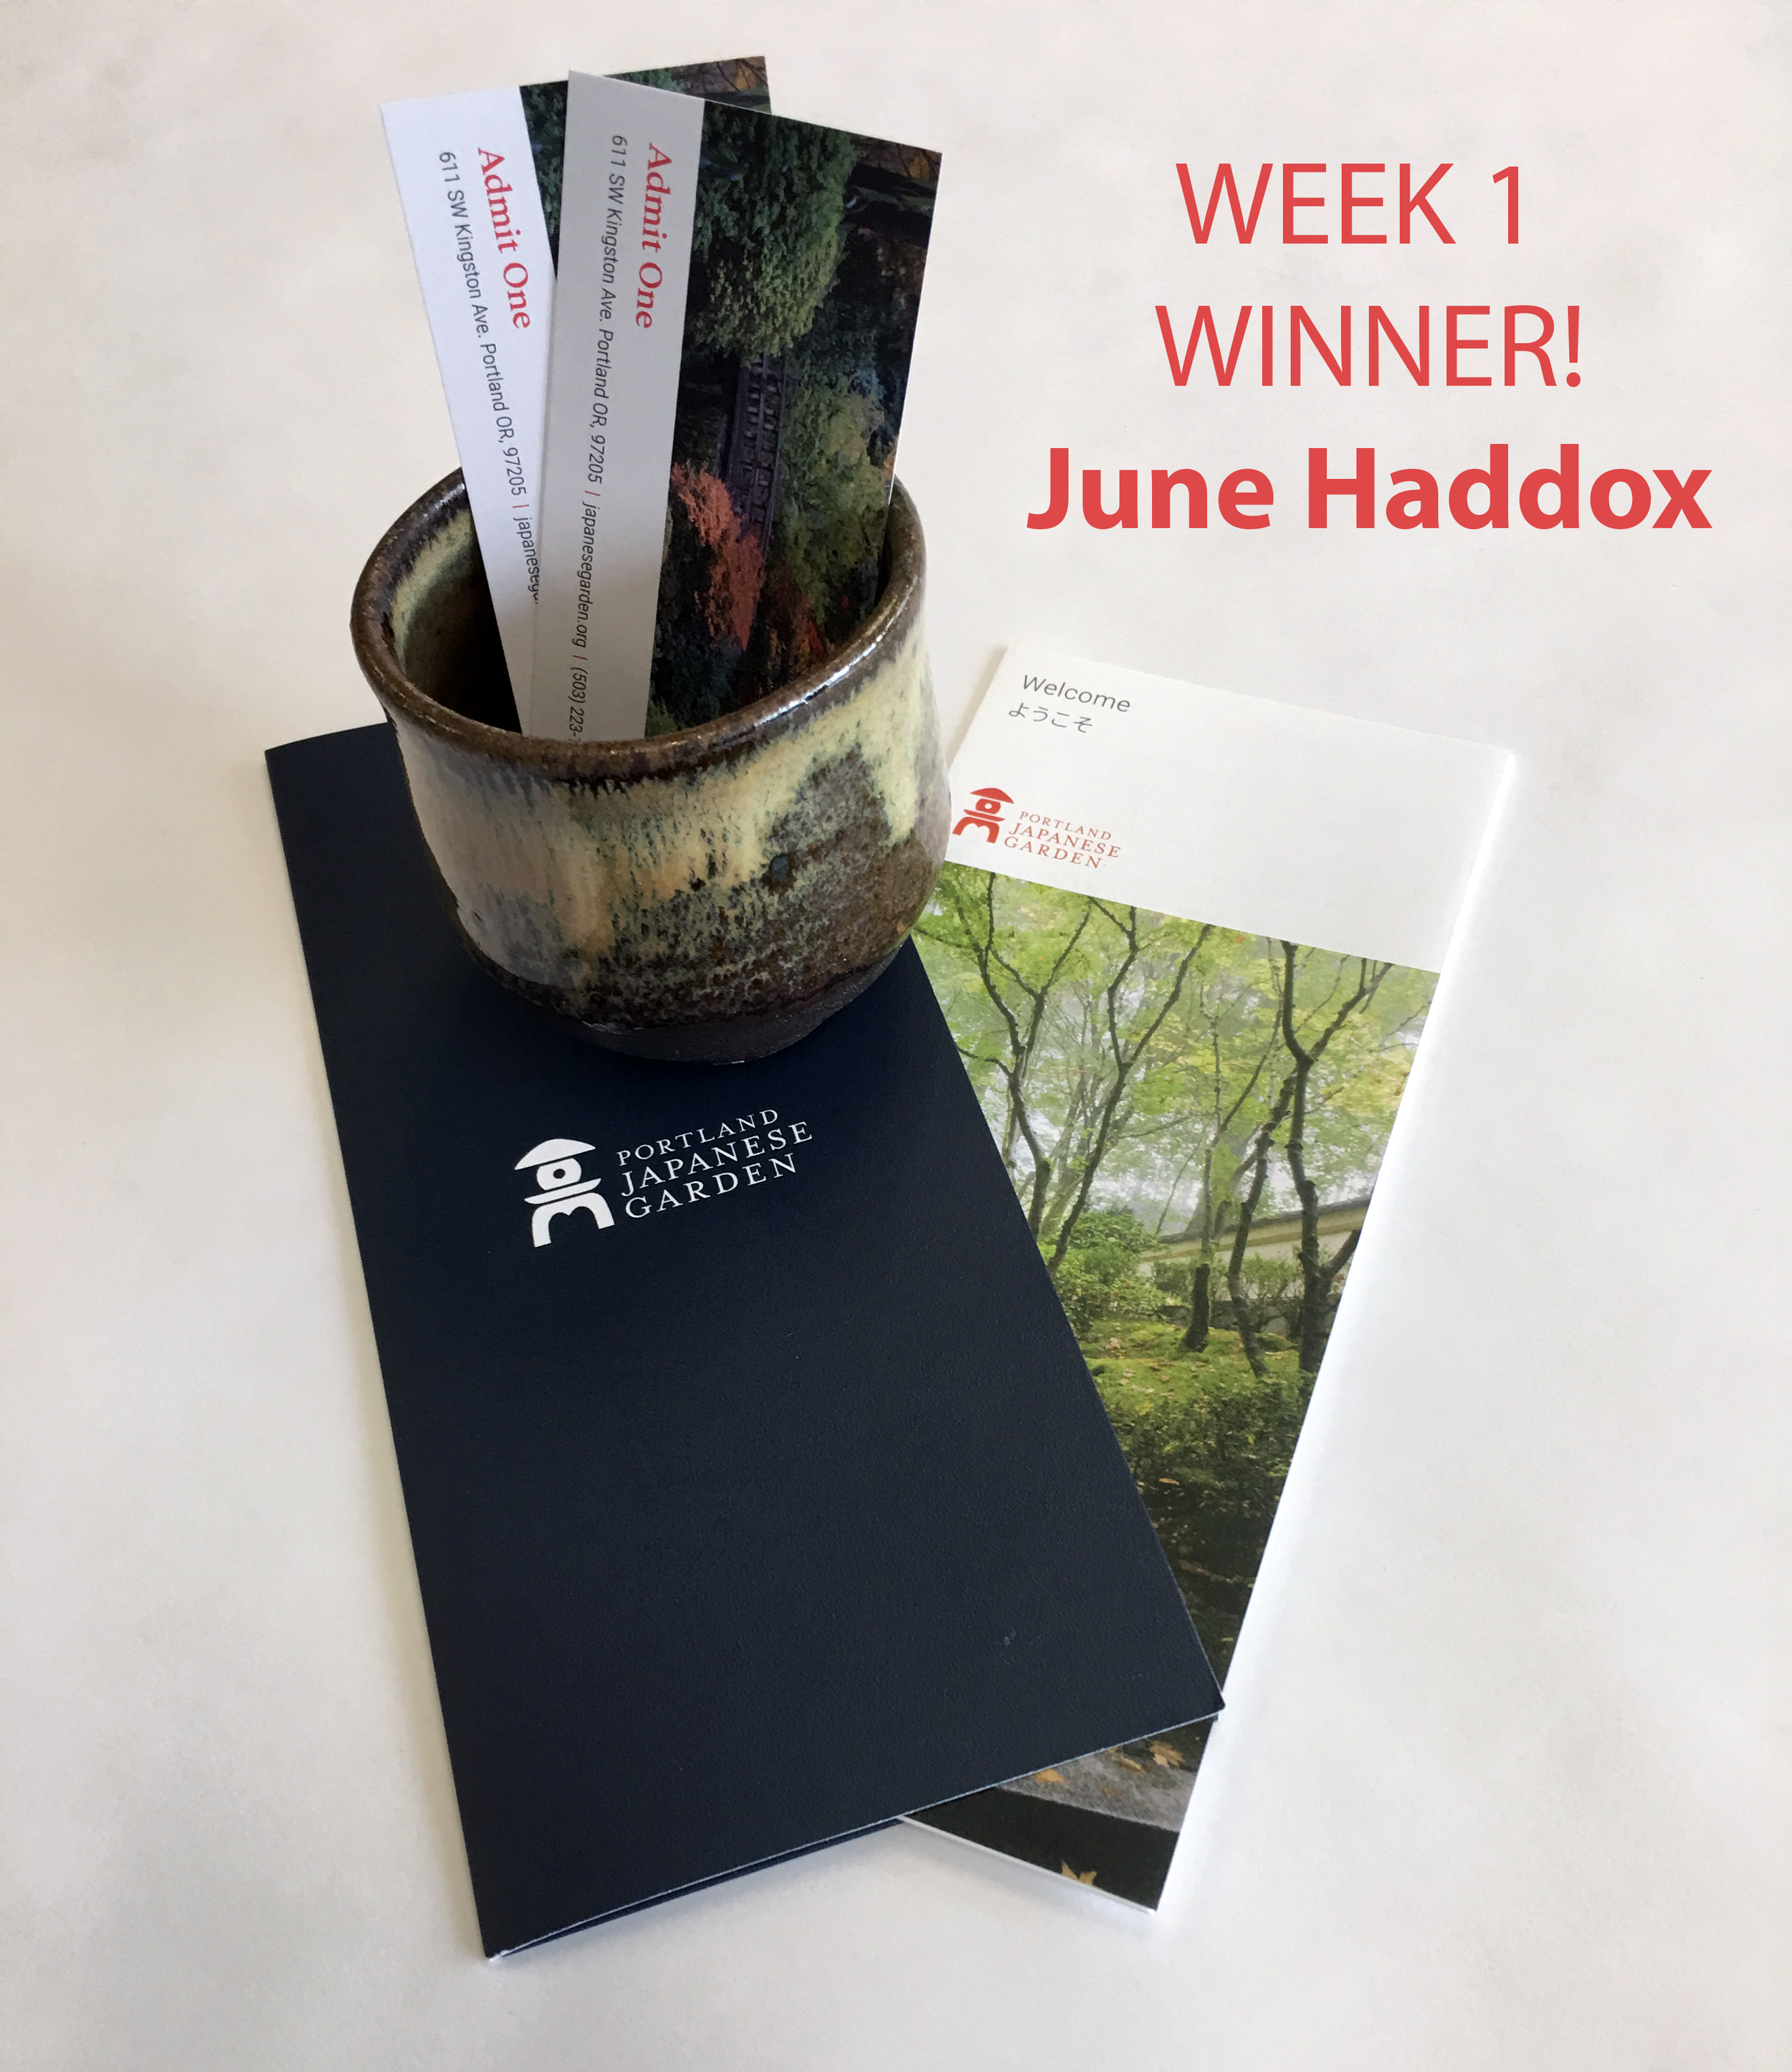 WEEK 1 - Tuesday, May 21 through Monday, May 27Enter to win this beautiful tea bowl and two tickets to Portland Japanese Garden. Value: $65.Winner will be announced Tuesday, May 28th.